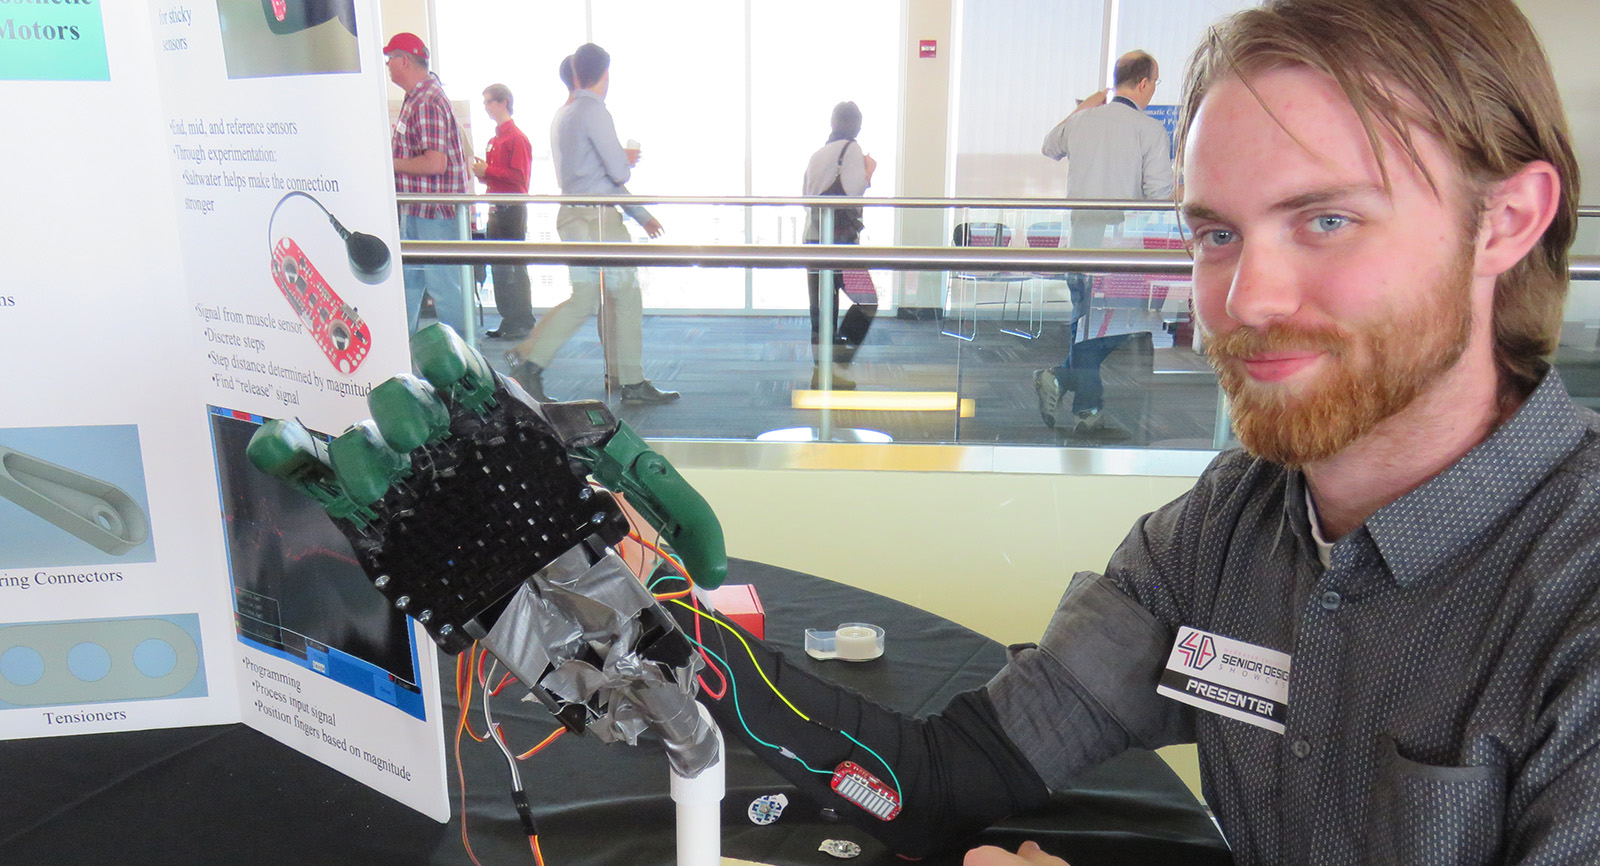 Student shows mechanical hand for senior design project